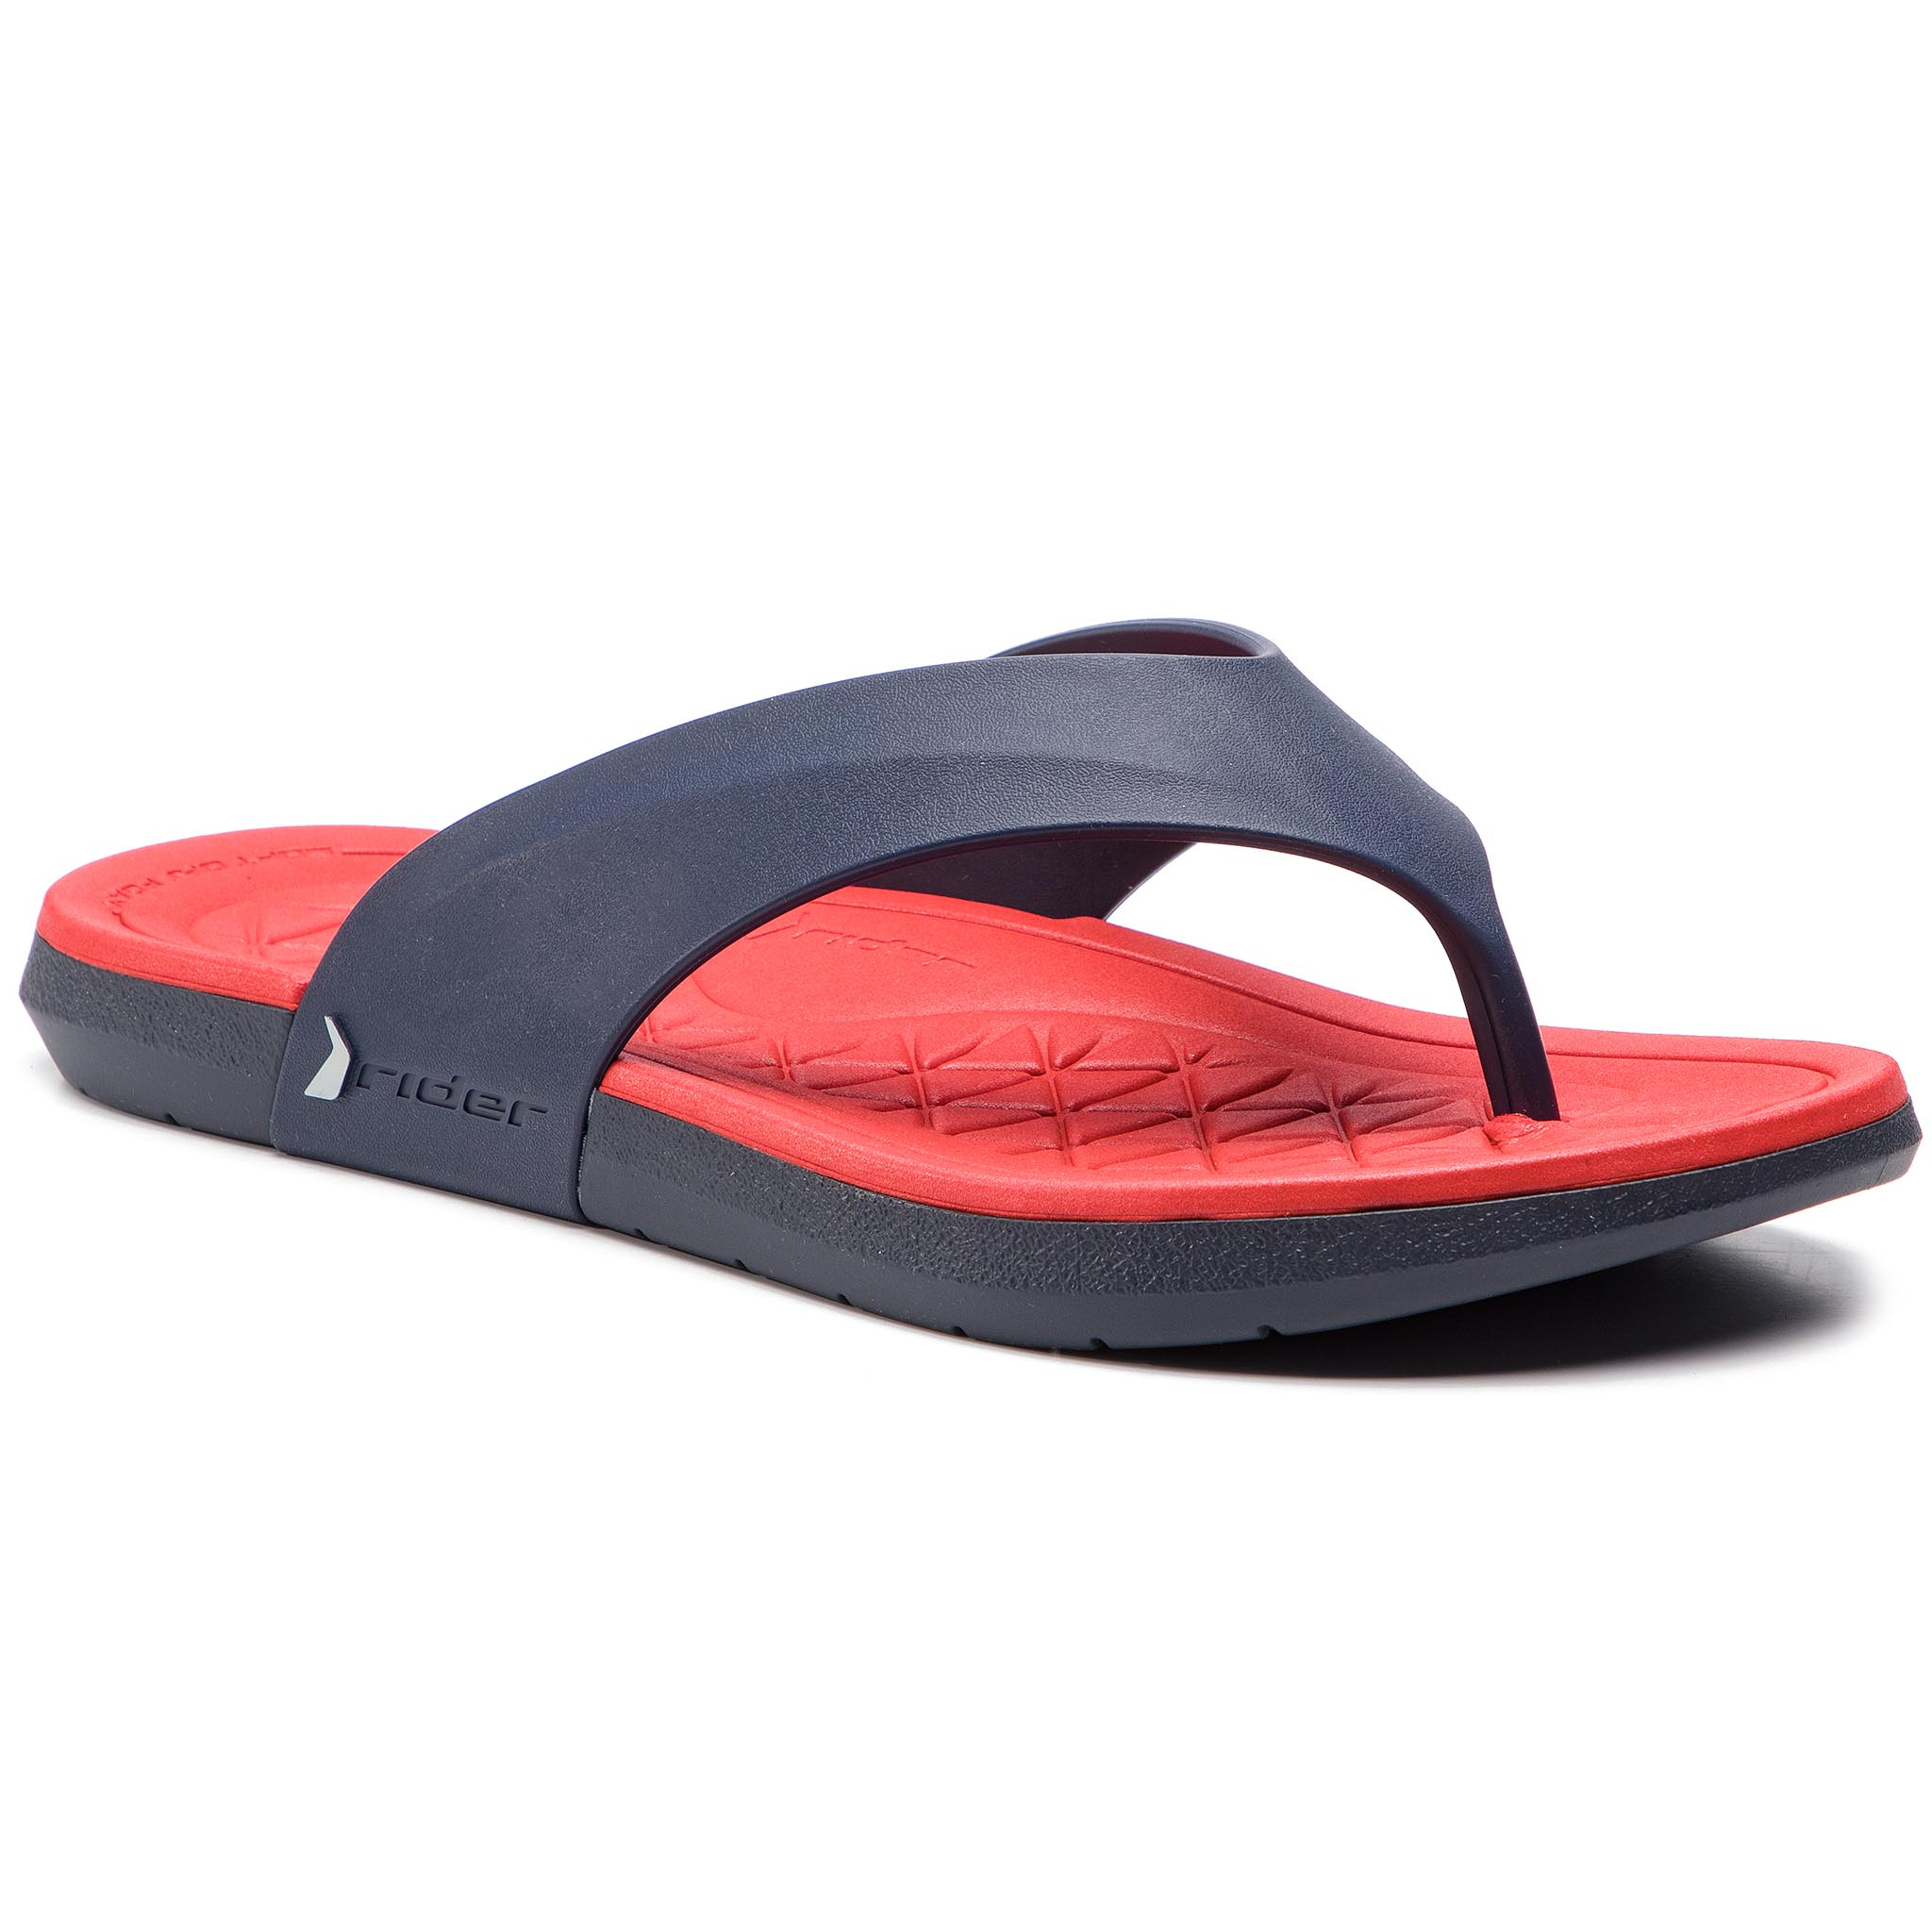 Flip flop RIDER - Infinity II Thong Ad 82495 Blue/Red 24642